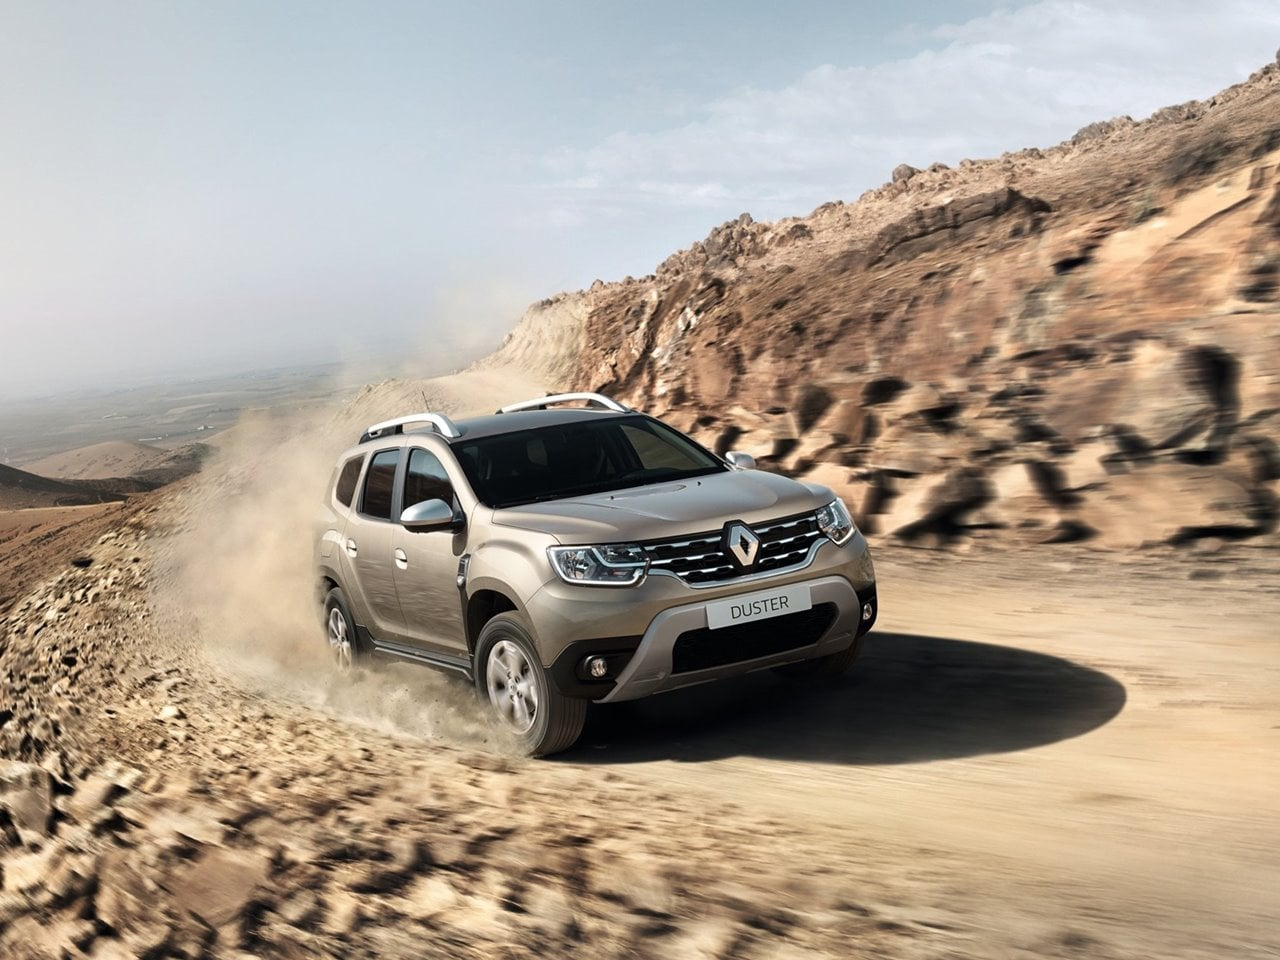 2018 renault duster unveiled india launch in the offing. Black Bedroom Furniture Sets. Home Design Ideas